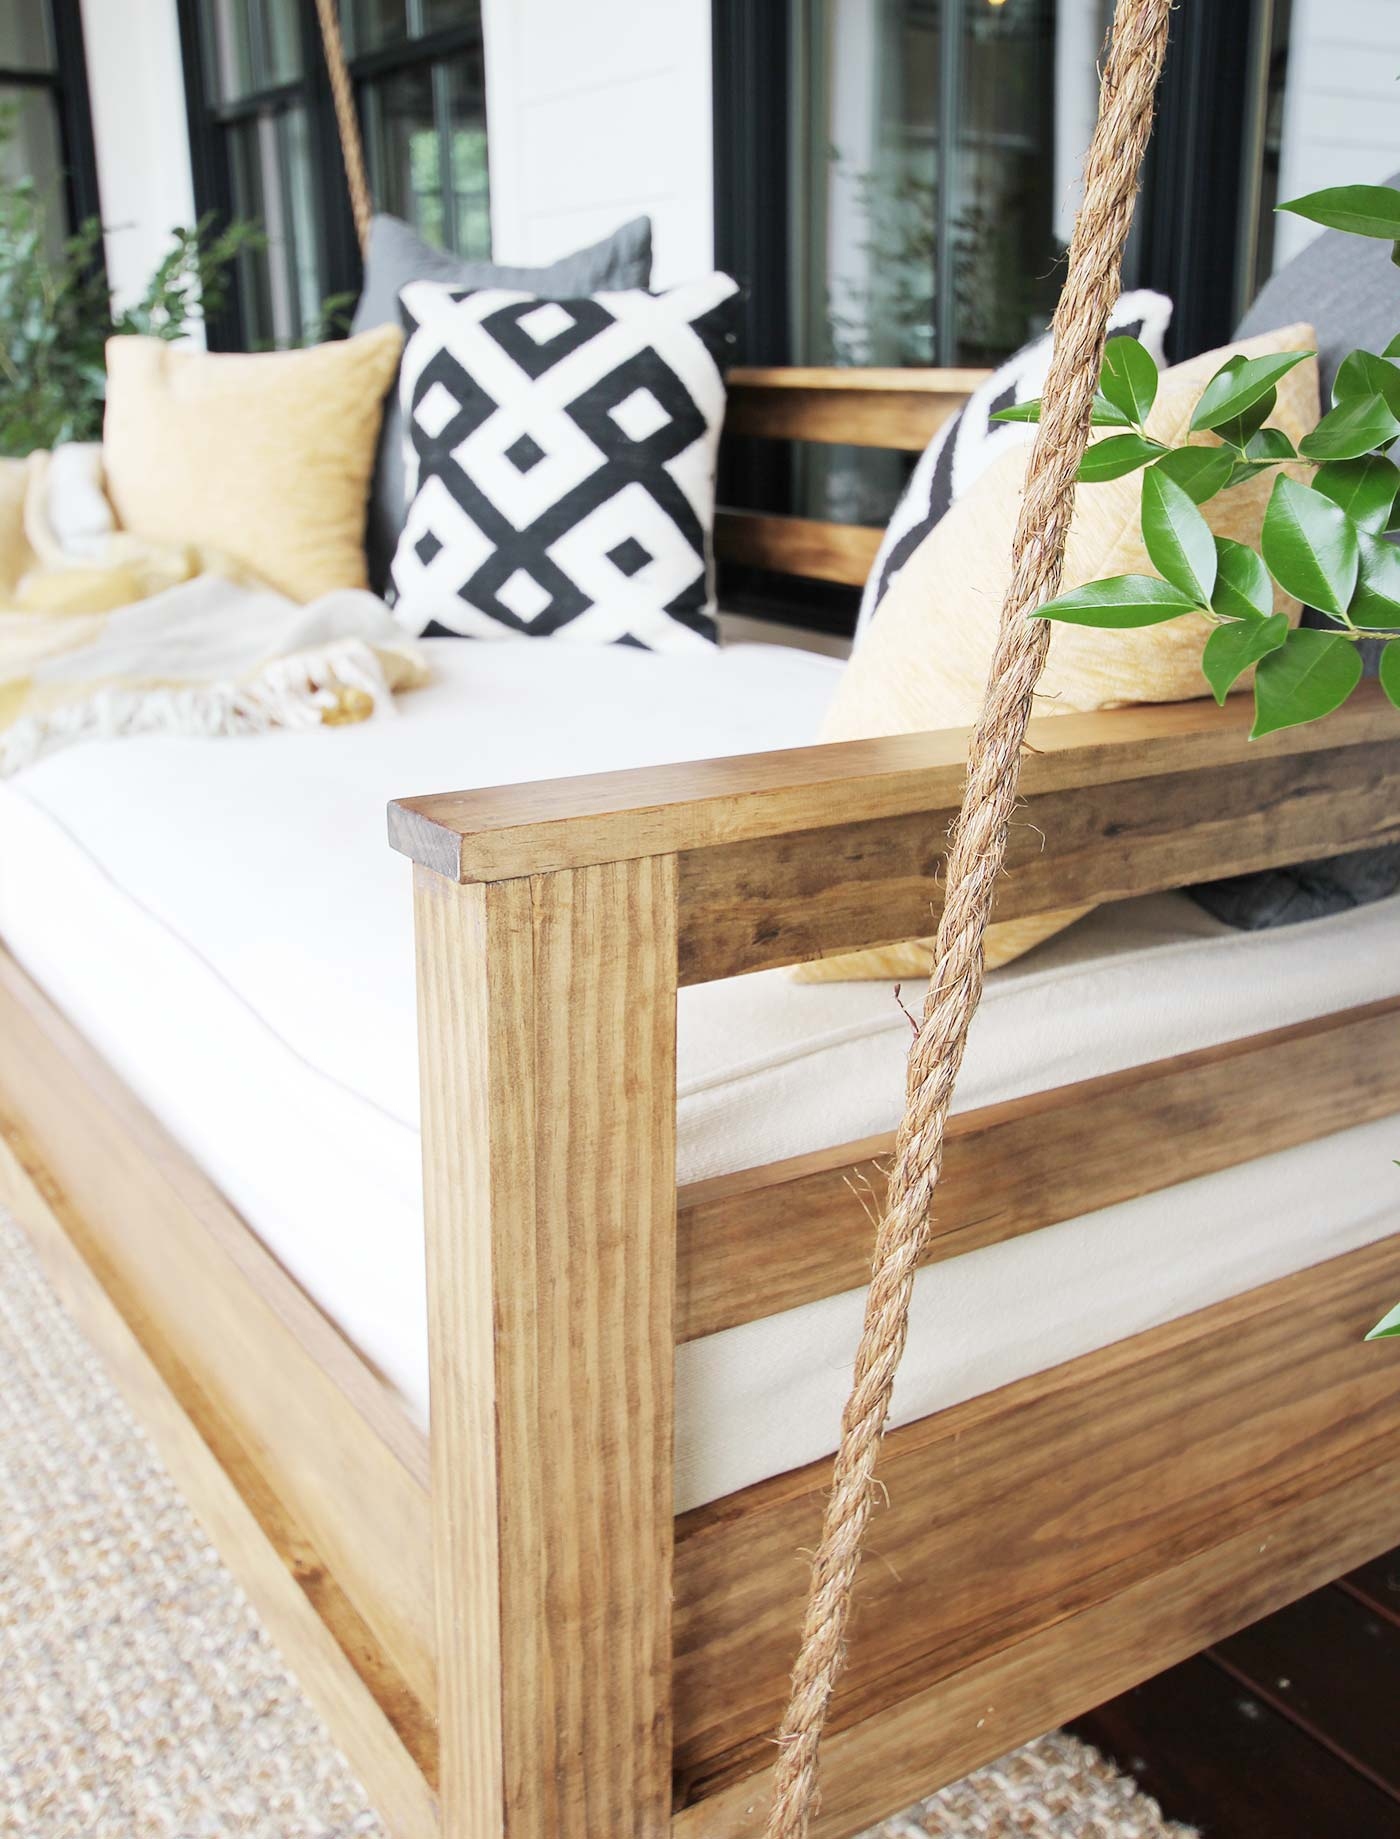 How To Build A Porch Swing Bed – Plank And Pillow With Day Bed Porch Swings (View 13 of 25)